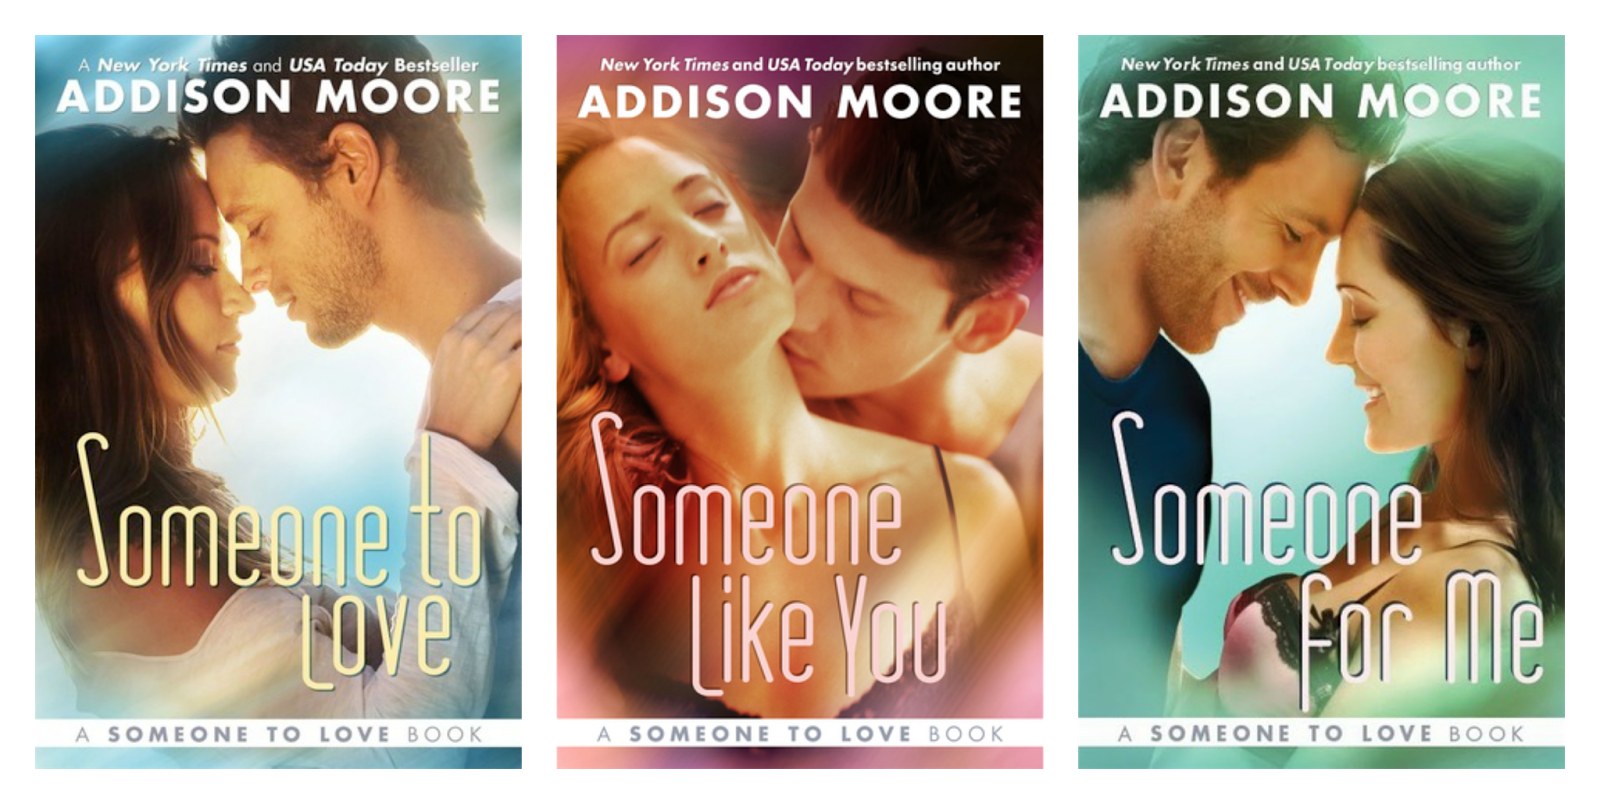 https://www.goodreads.com/series/106415-someone-to-love